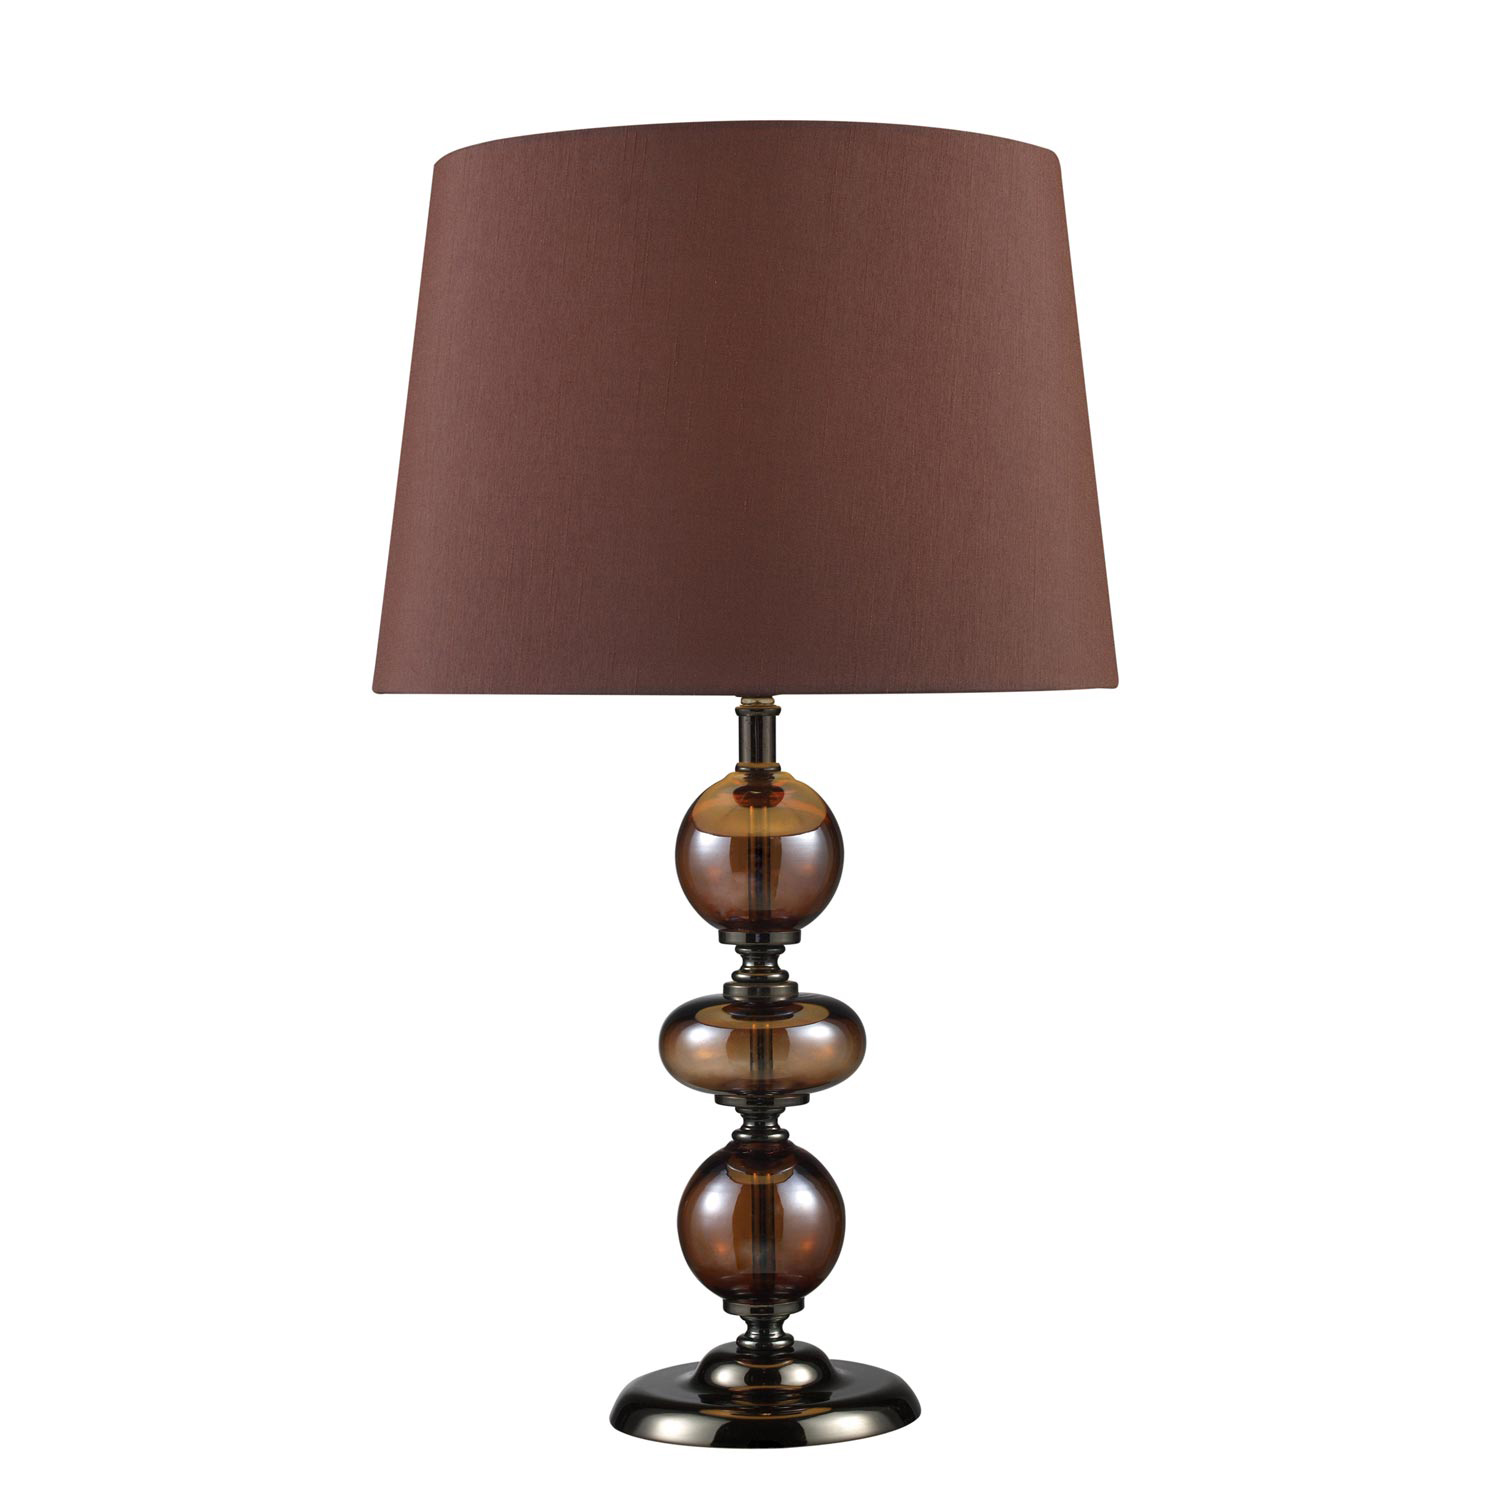 Elk Lighting D1606 Dravos Table Lamp - Bronze and Coffee Plating